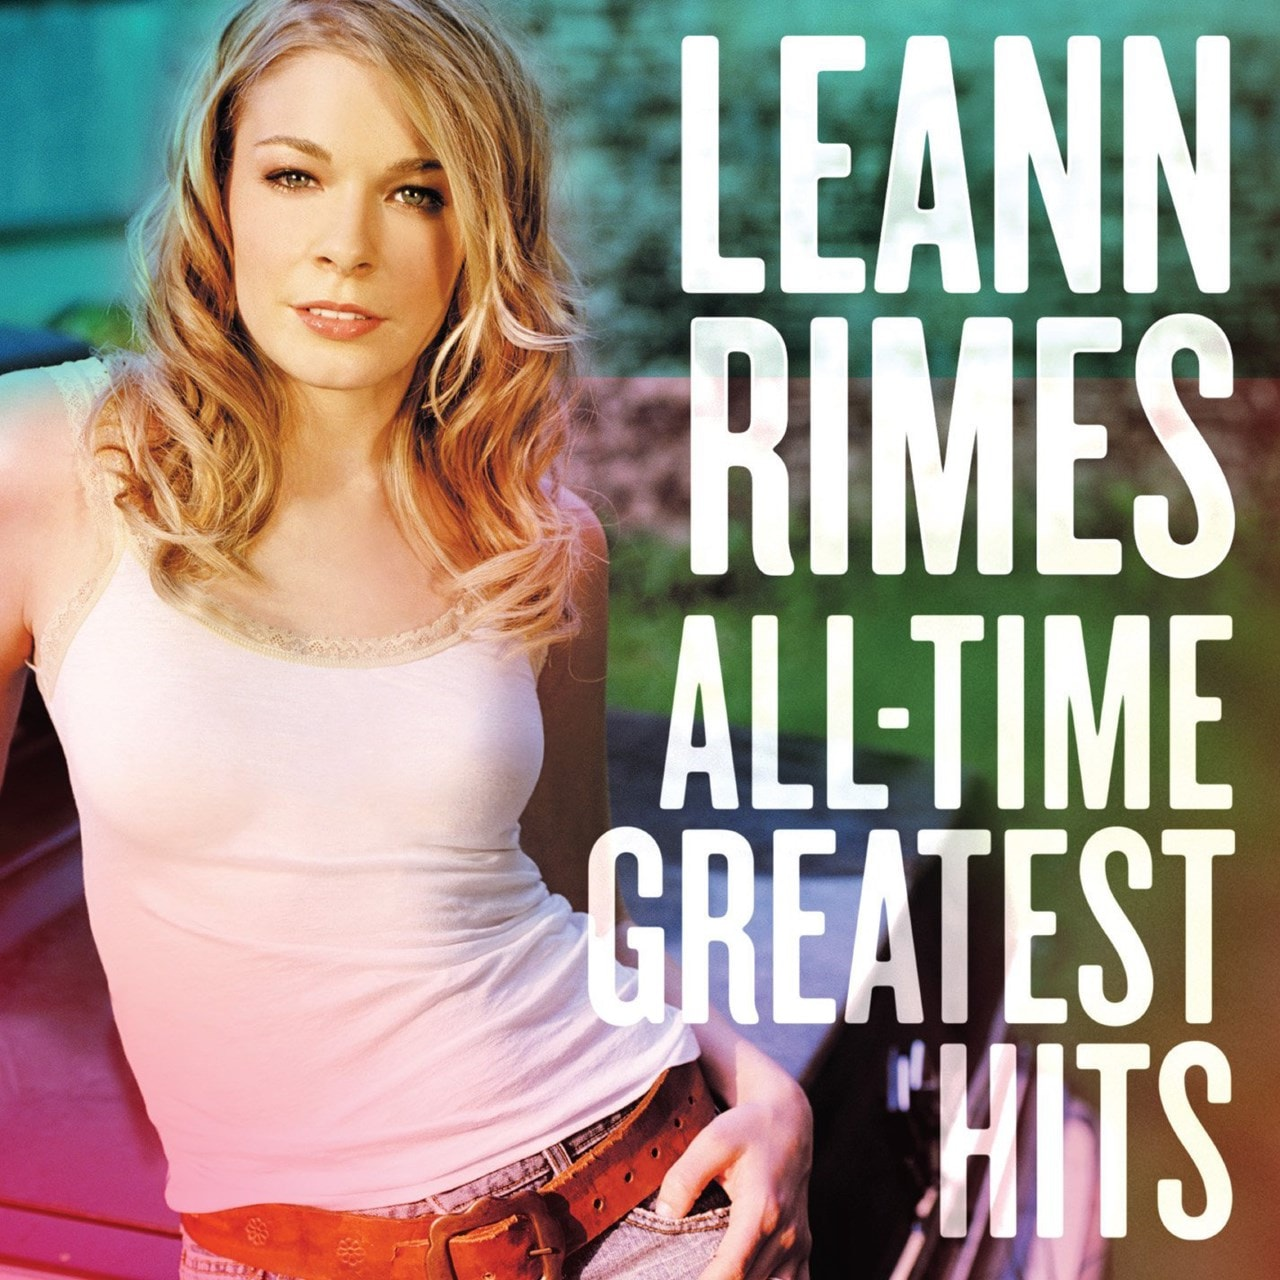 All-time Greatest Hits - 1